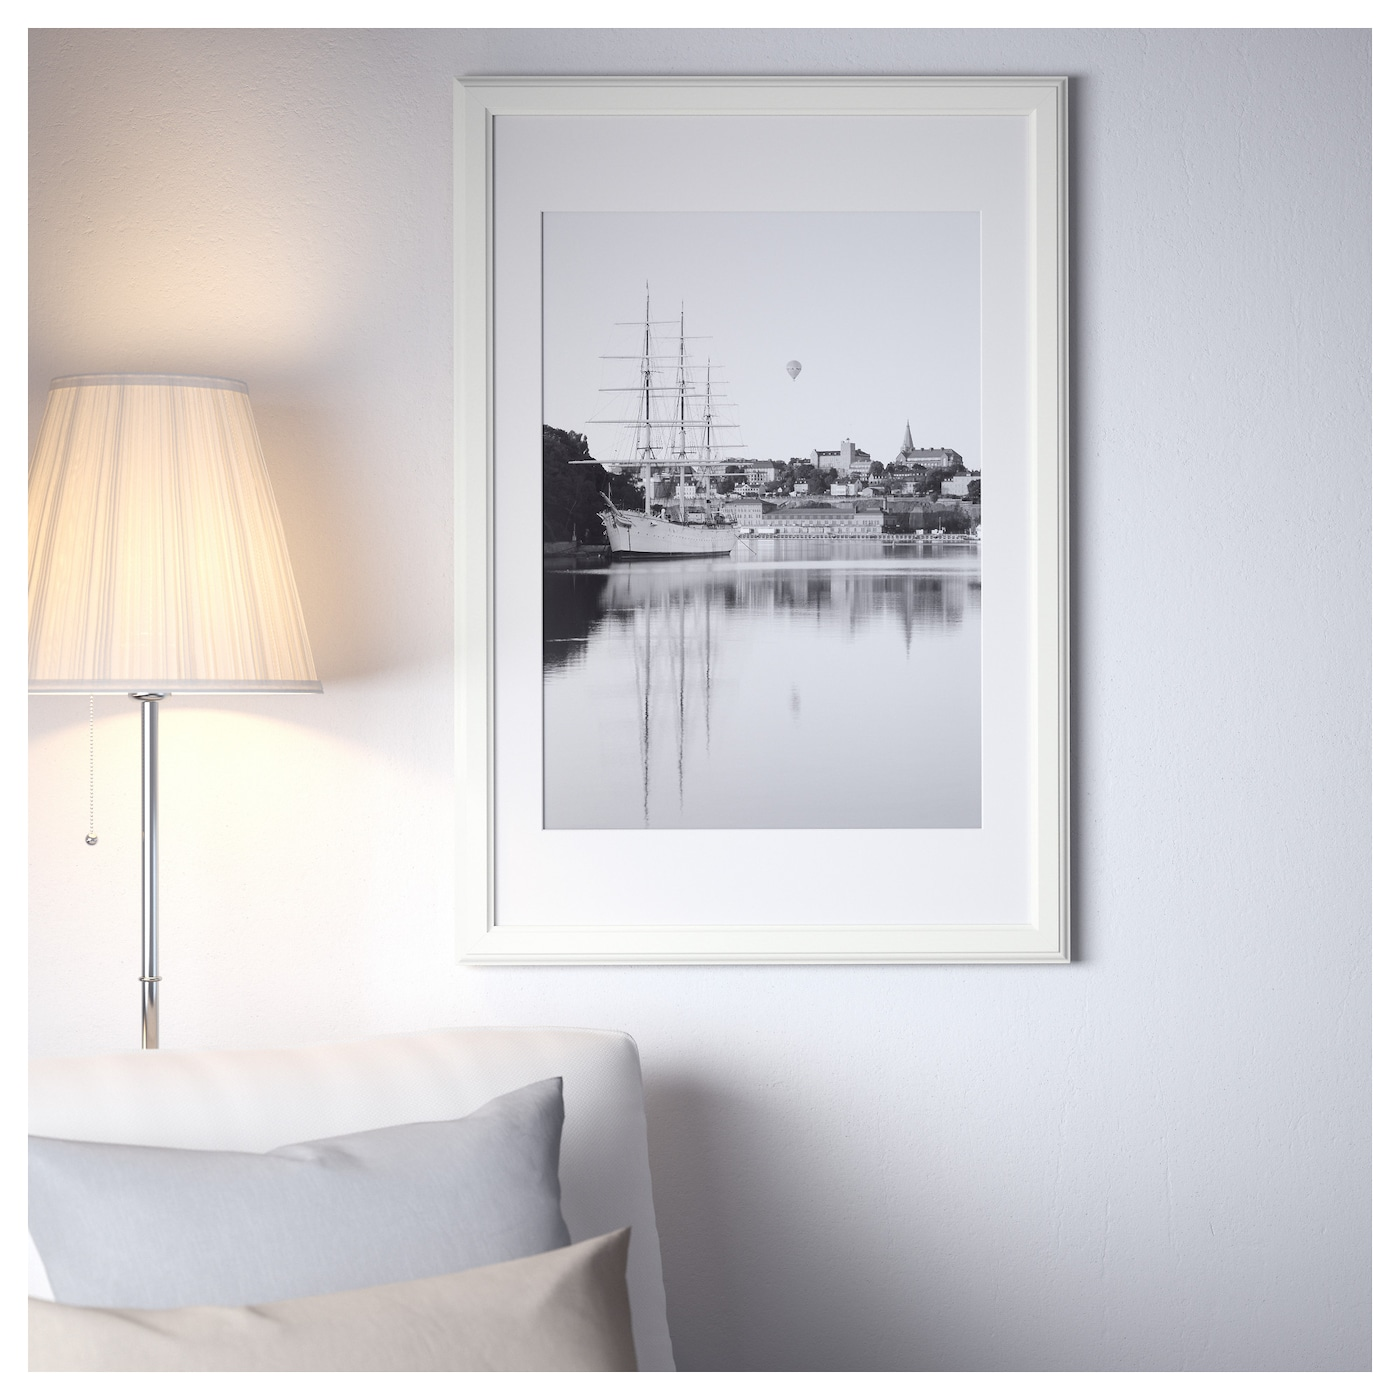 IKEA VIRSERUM frame Can be hung horizontally or vertically to fit in the space available.